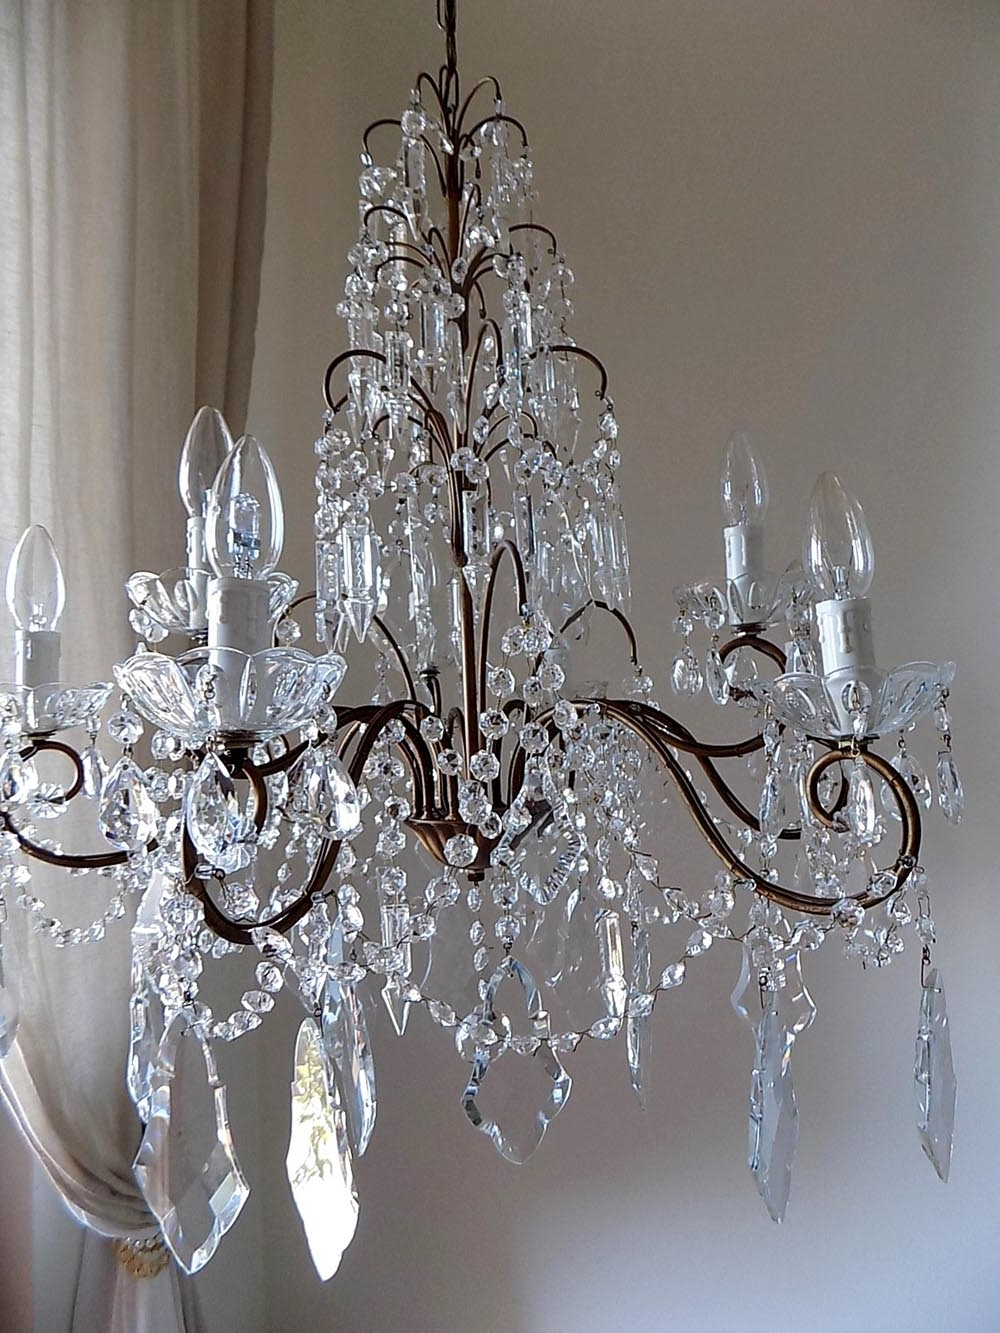 Widely Used Brass And Crystal Chandelier For Italian Vintage 9 Arms Chandelier With Rare Shaped Crystals (View 14 of 15)